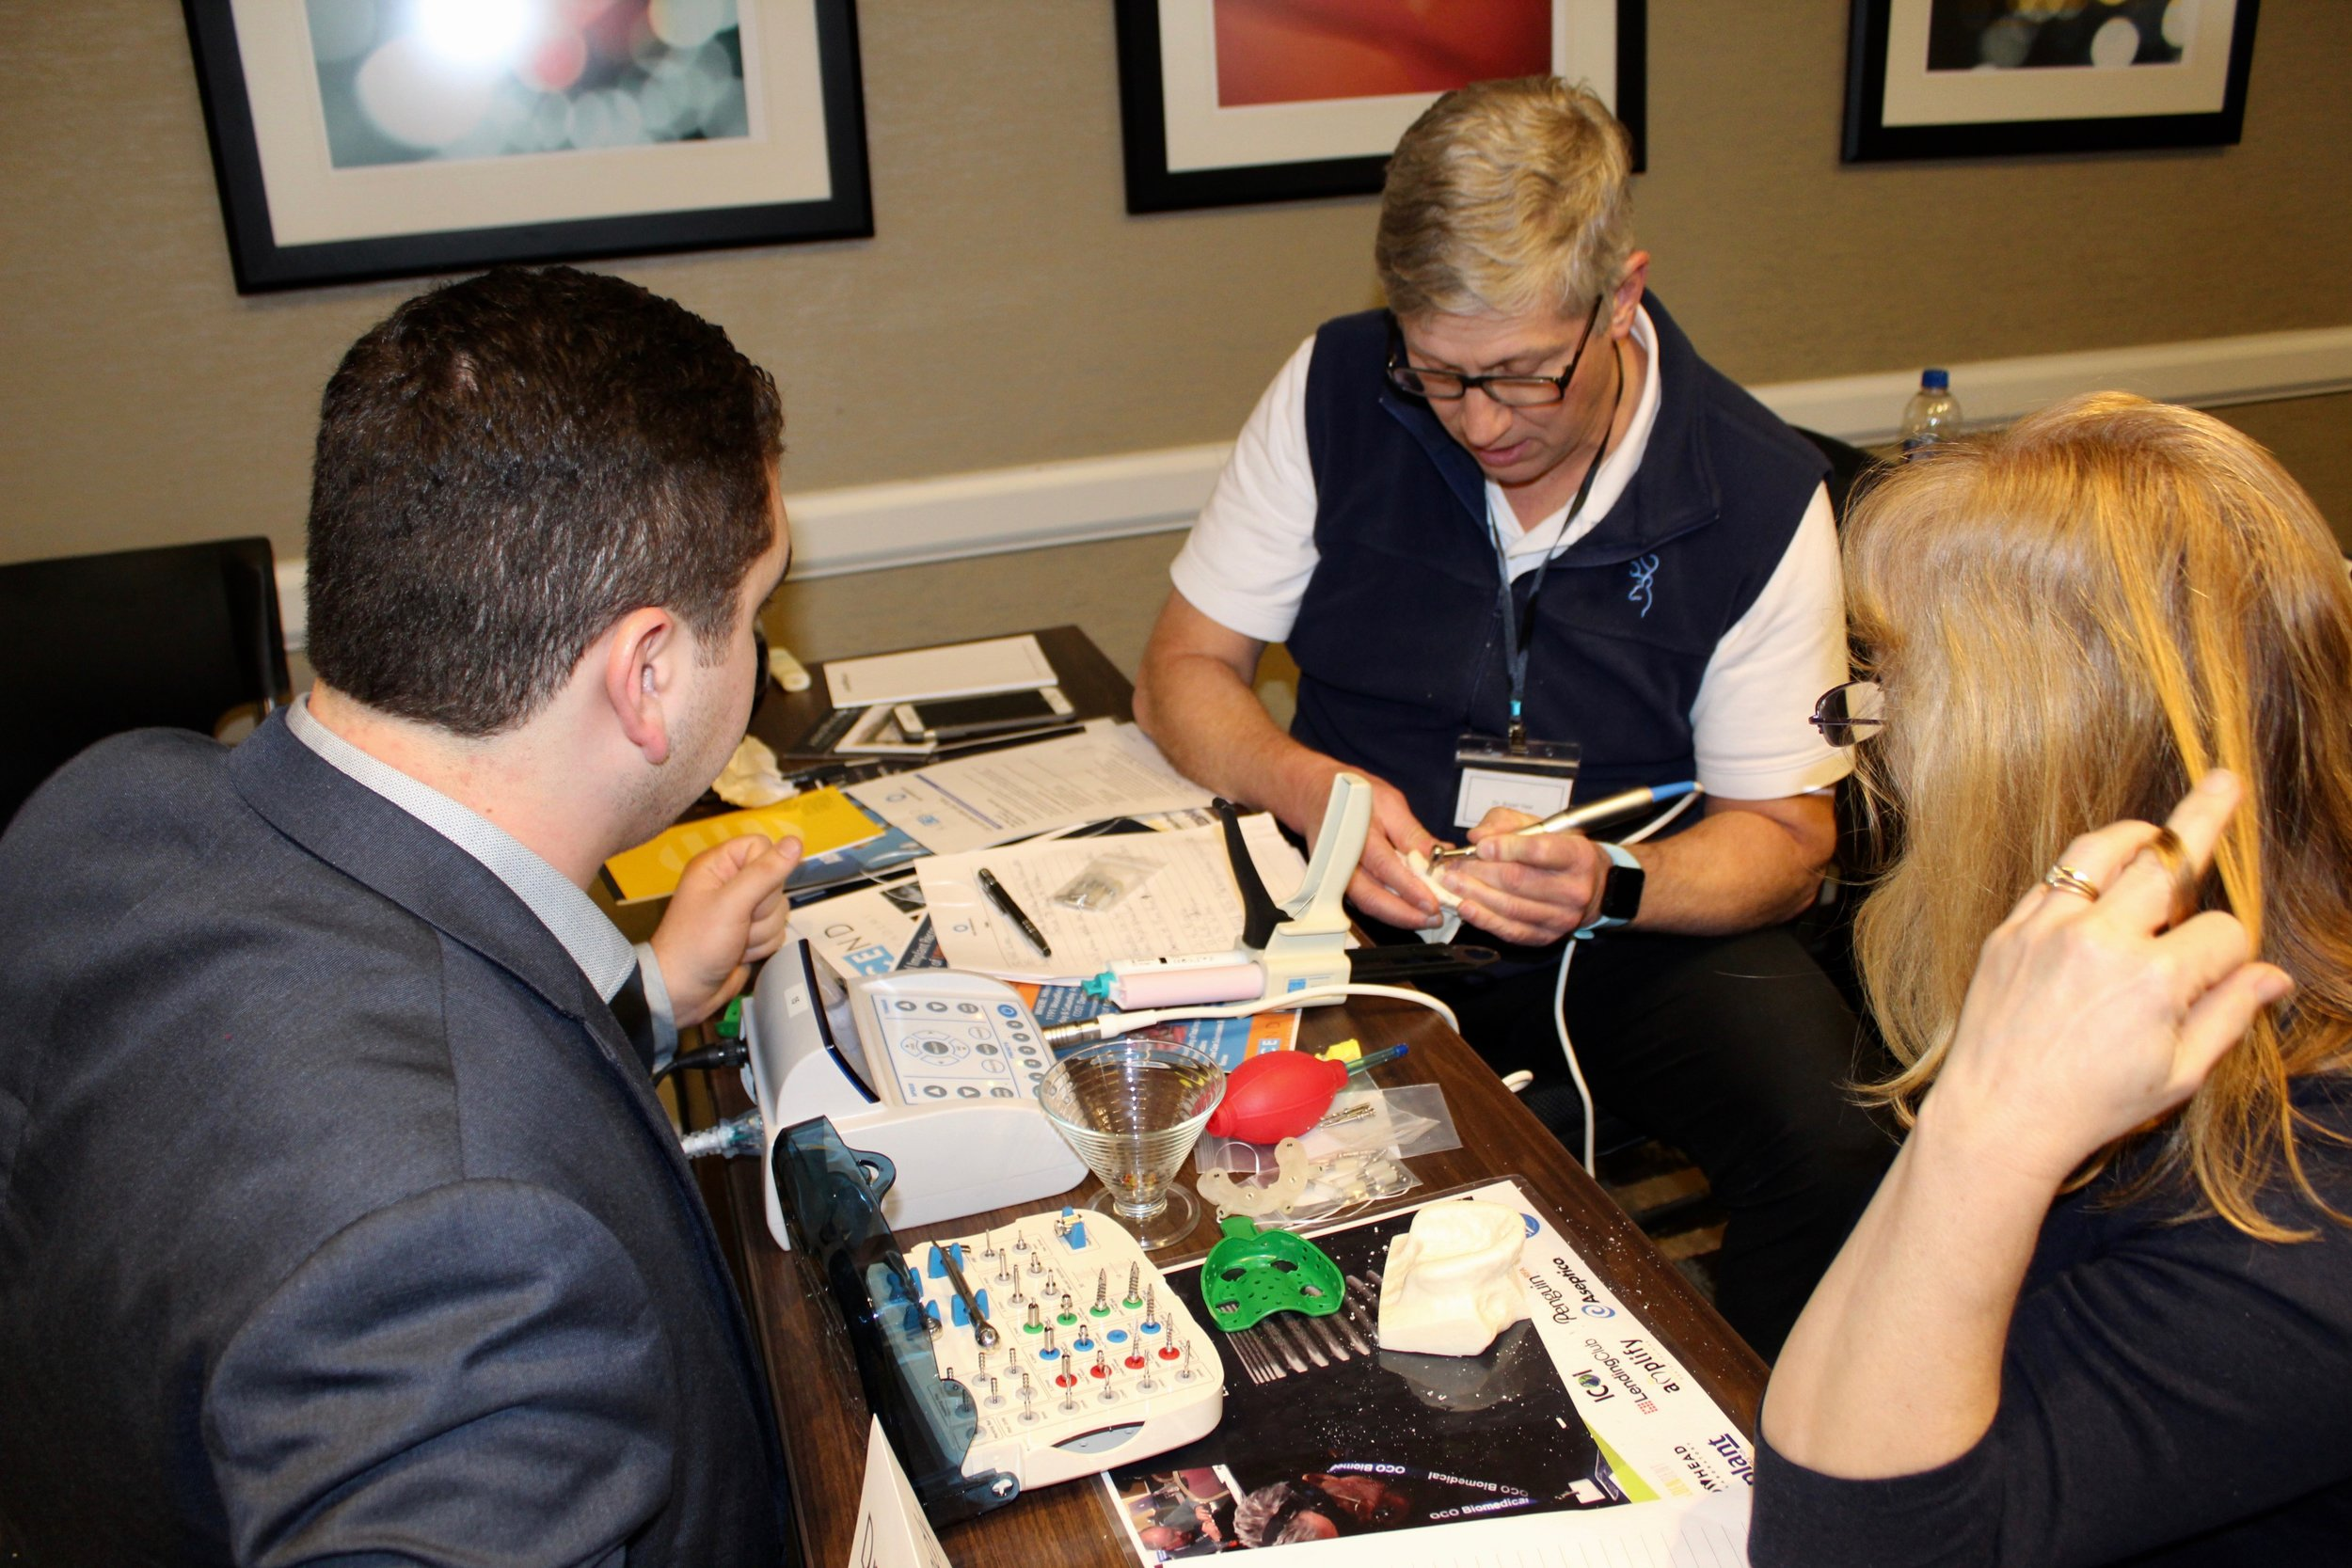 OCO Biomedical representative helping attendees during hands-on workshop